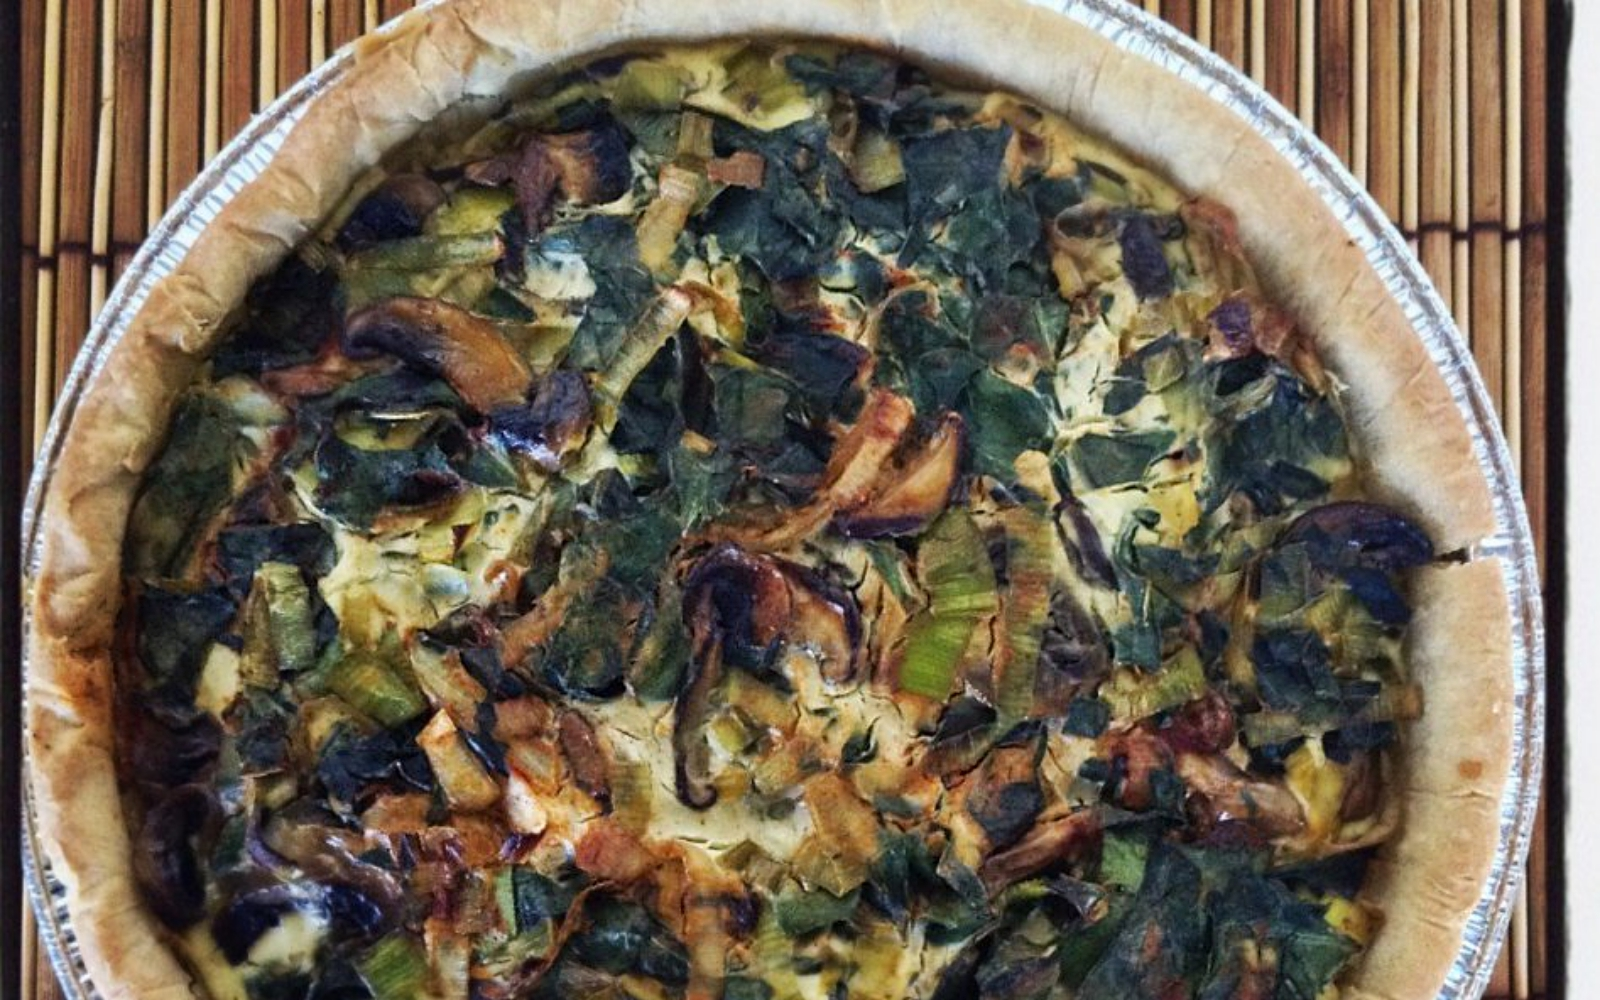 Vegan Swiss Chard Quiche With Wild Mushrooms